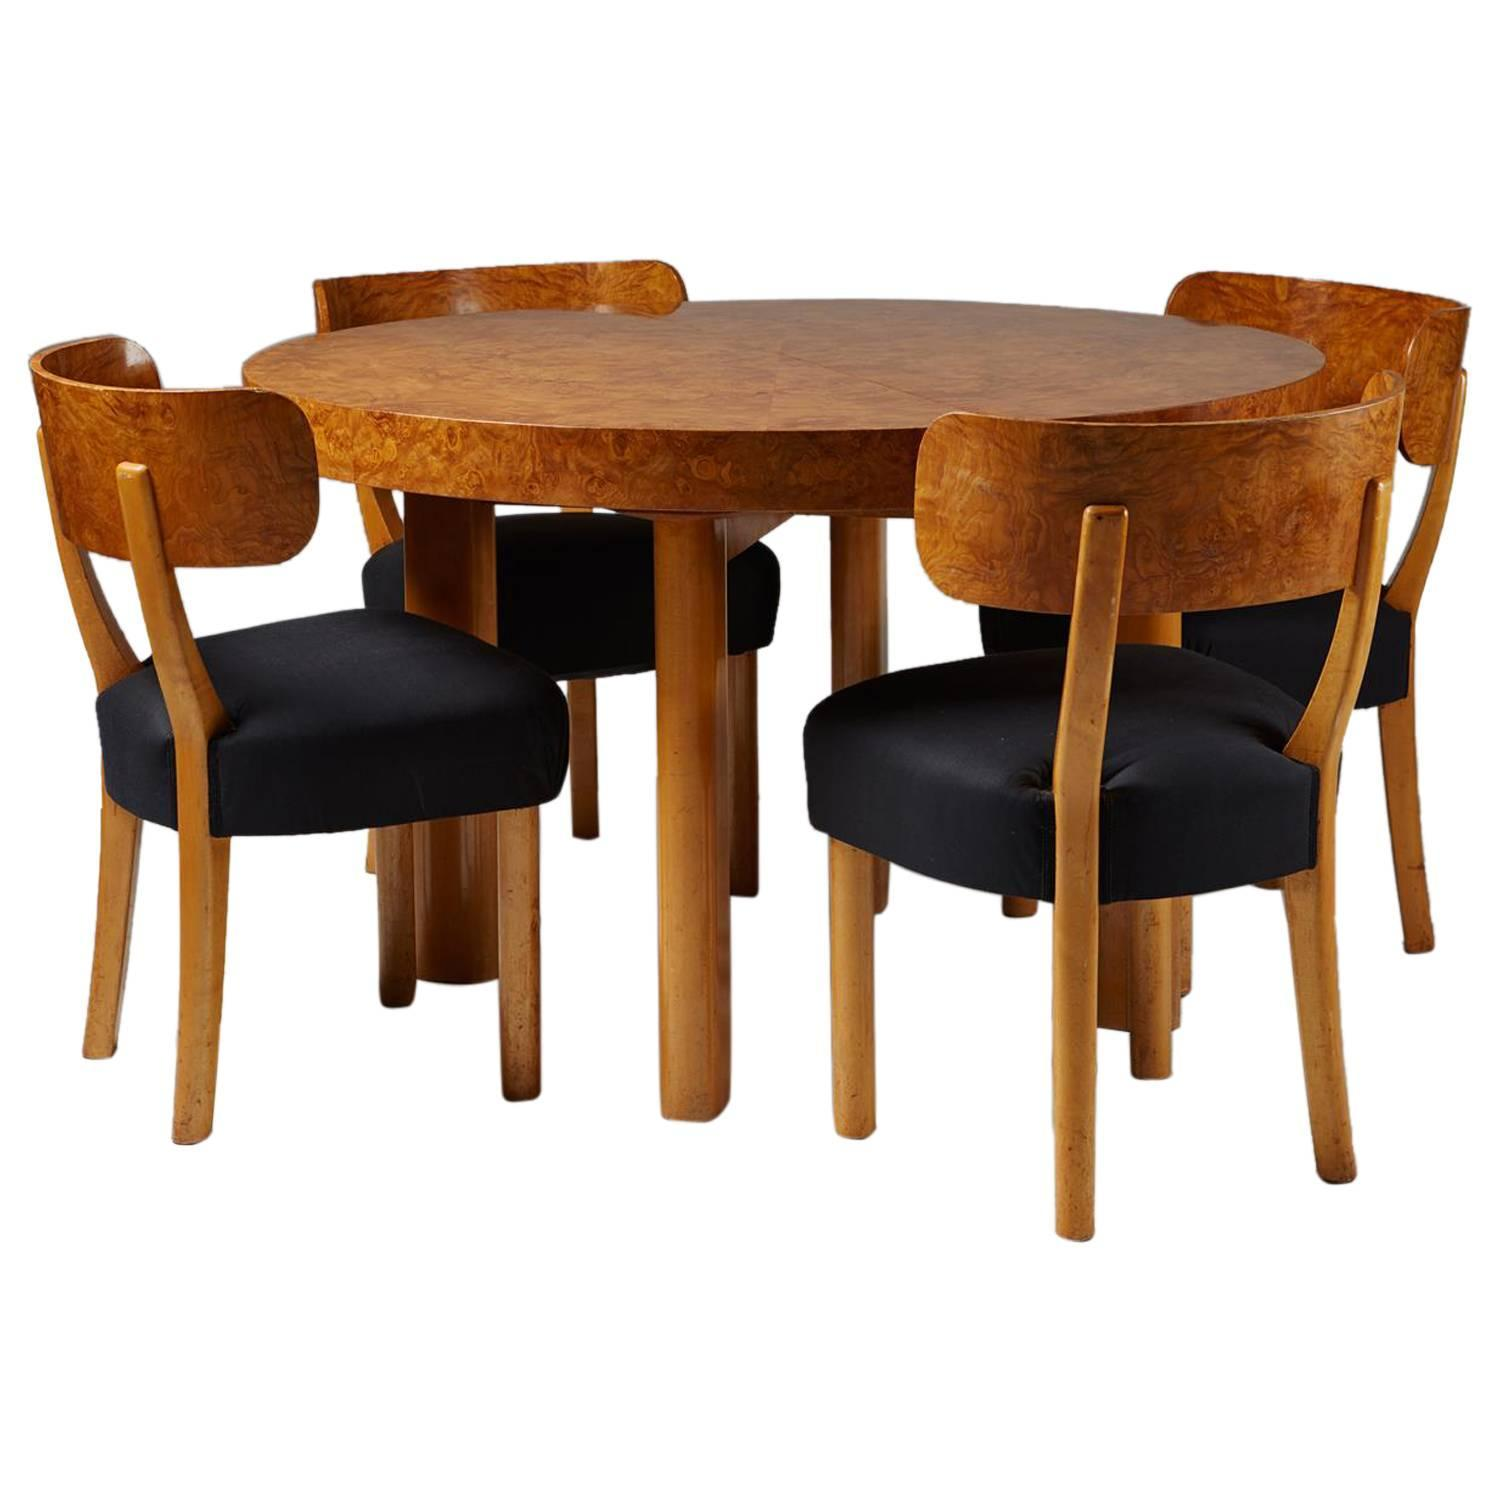 Set of Dining Table and Six Chairs Birka Designed by  : 3820682z from www.1stdibs.com size 1500 x 1500 jpeg 99kB